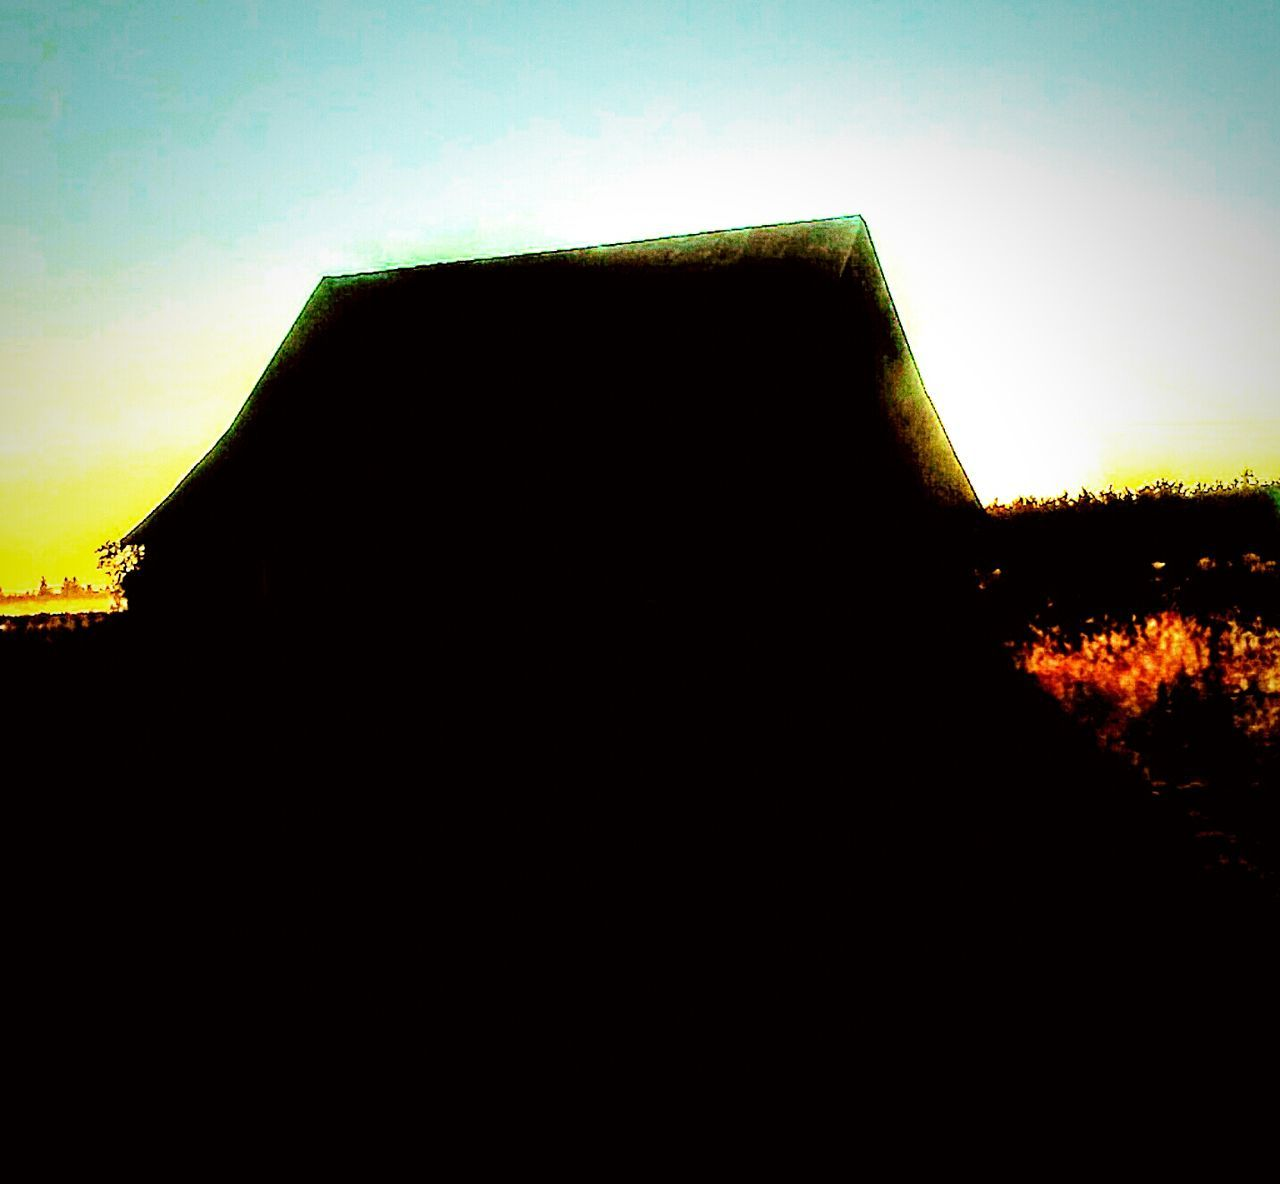 Good Morning Willamwttw Valley Getting Warmer Have A Blissful Day Eyeem Morning Silhouettes Sun Over The Barn Here Comes The Sun Rise And Shine Its Going To Be A Beautifull Day :)